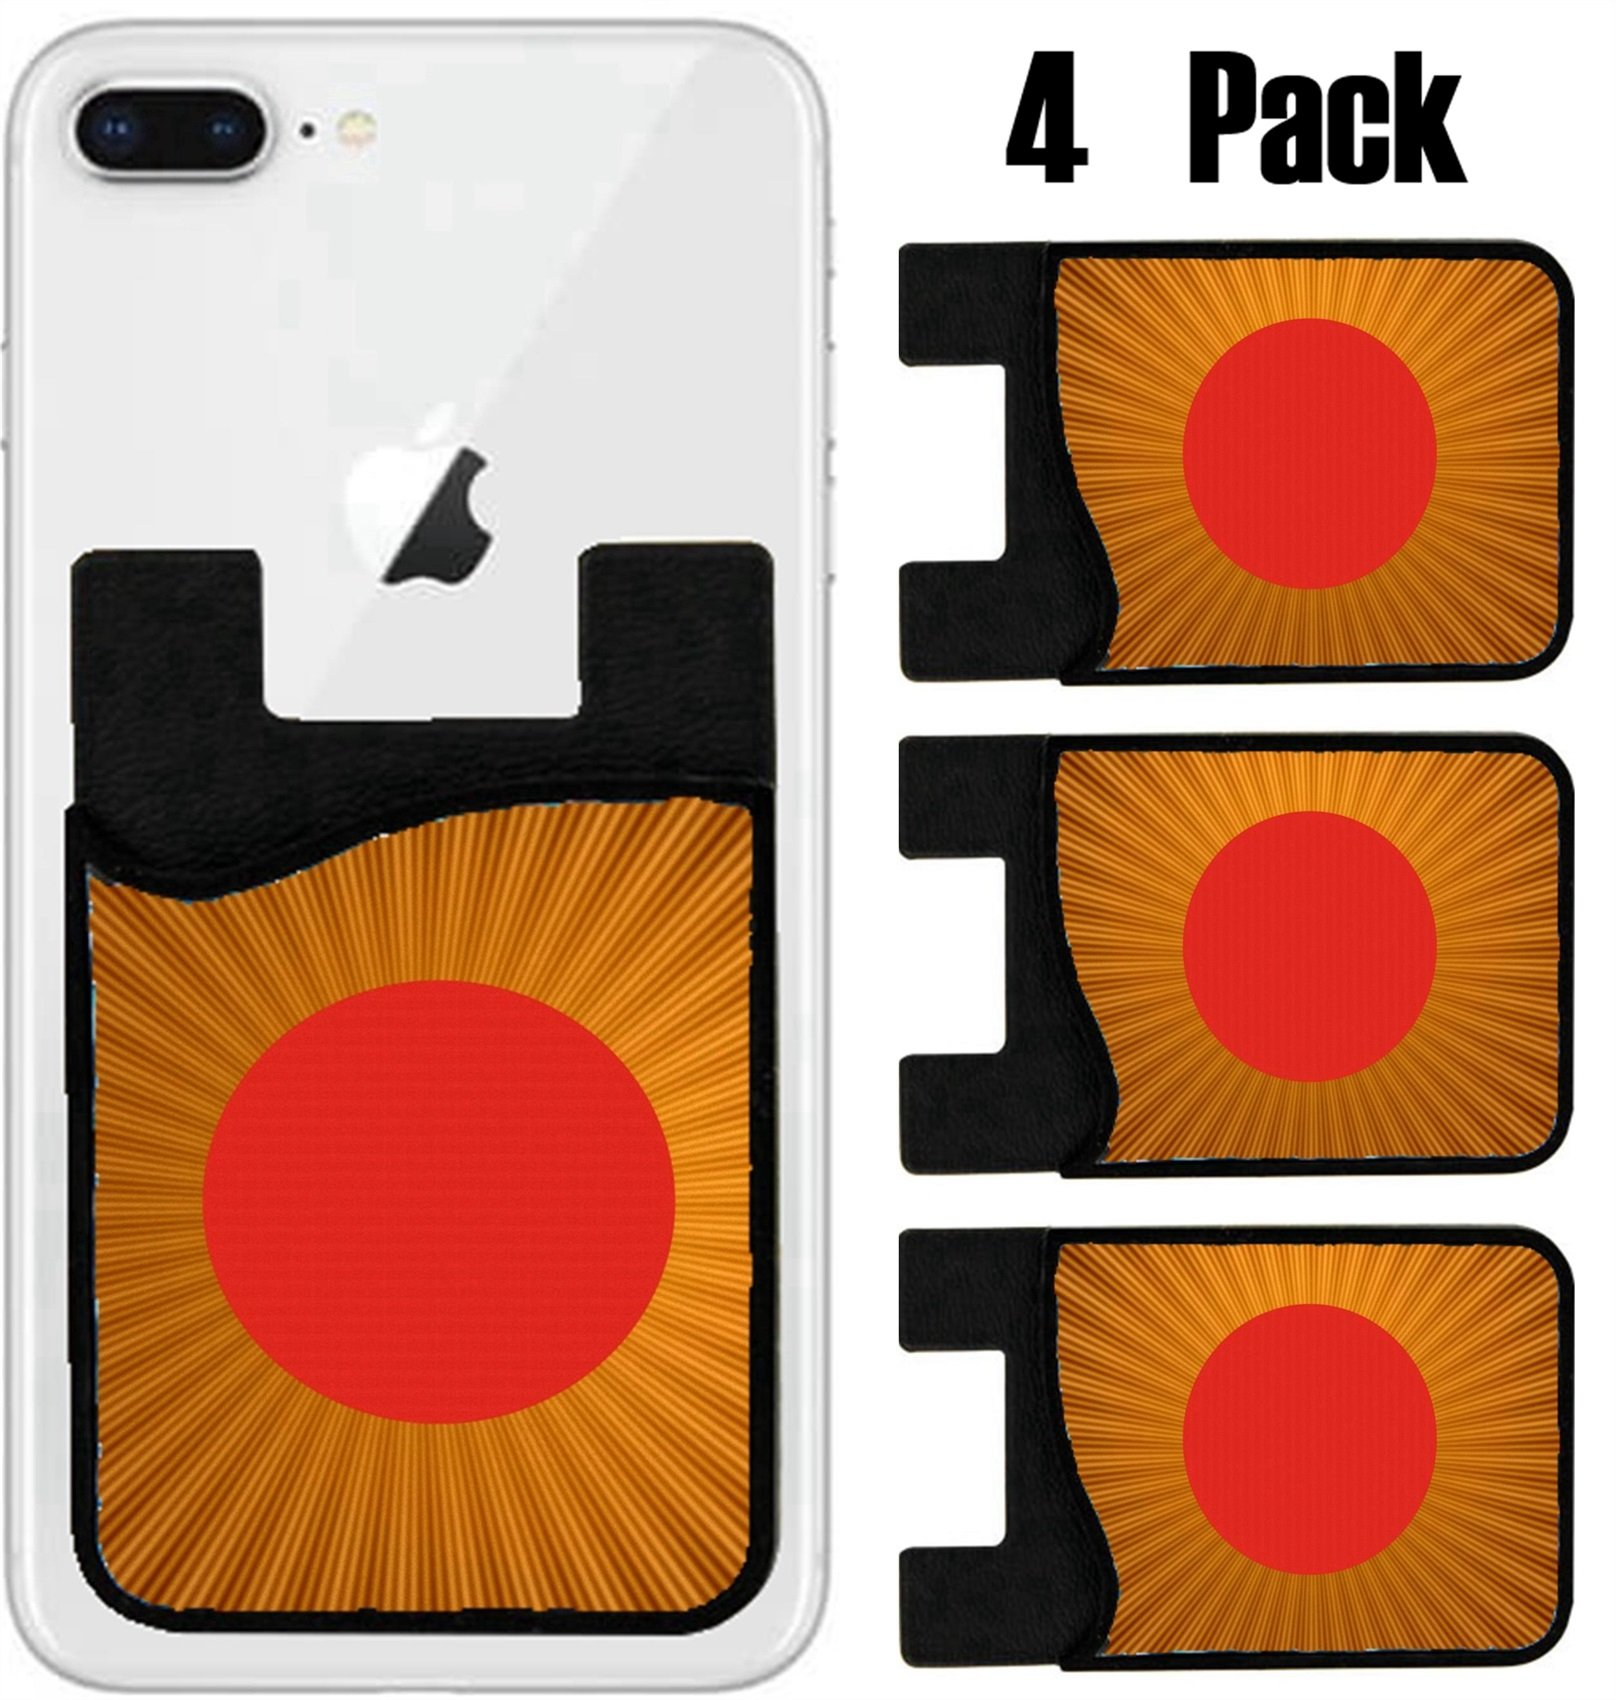 MSD Phone Card holder, sleeve/wallet for iPhone Samsung Android and all smartphones with removable microfiber screen cleaner Silicone card Caddy(4 Pack) Space warp travel through orange gold abstract